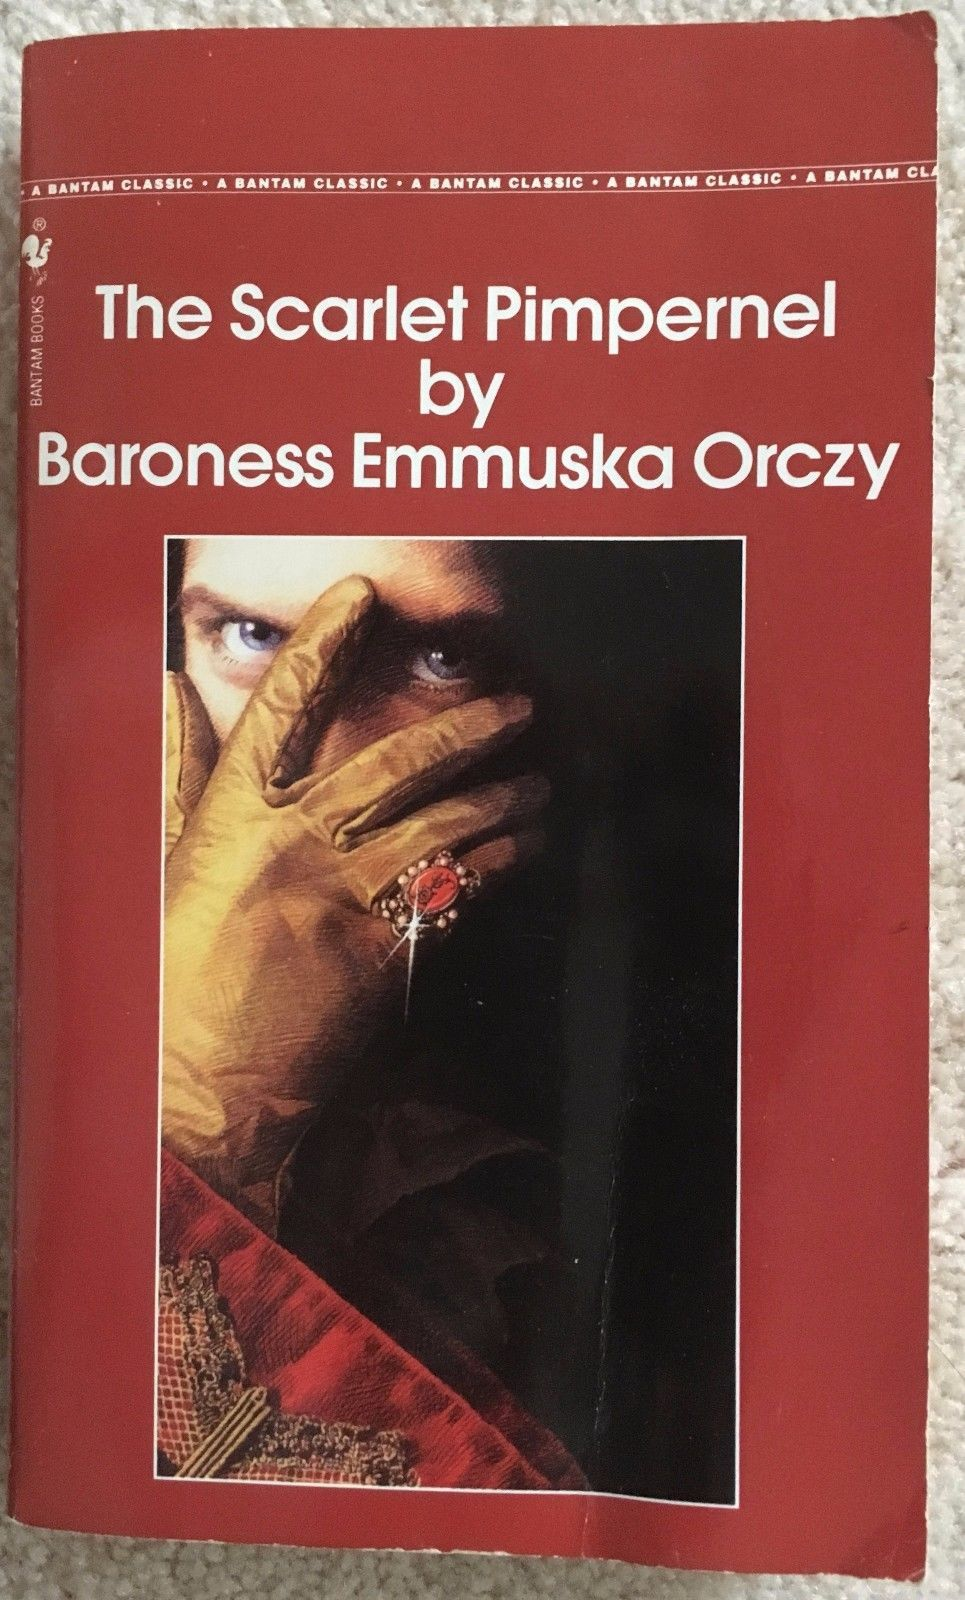 an introduction to the scarlet pimpernel baroness emmuska orczy Penguin classics: the scarlet pimpernel as anne perry writes in her introduction baroness emmuska orczy.